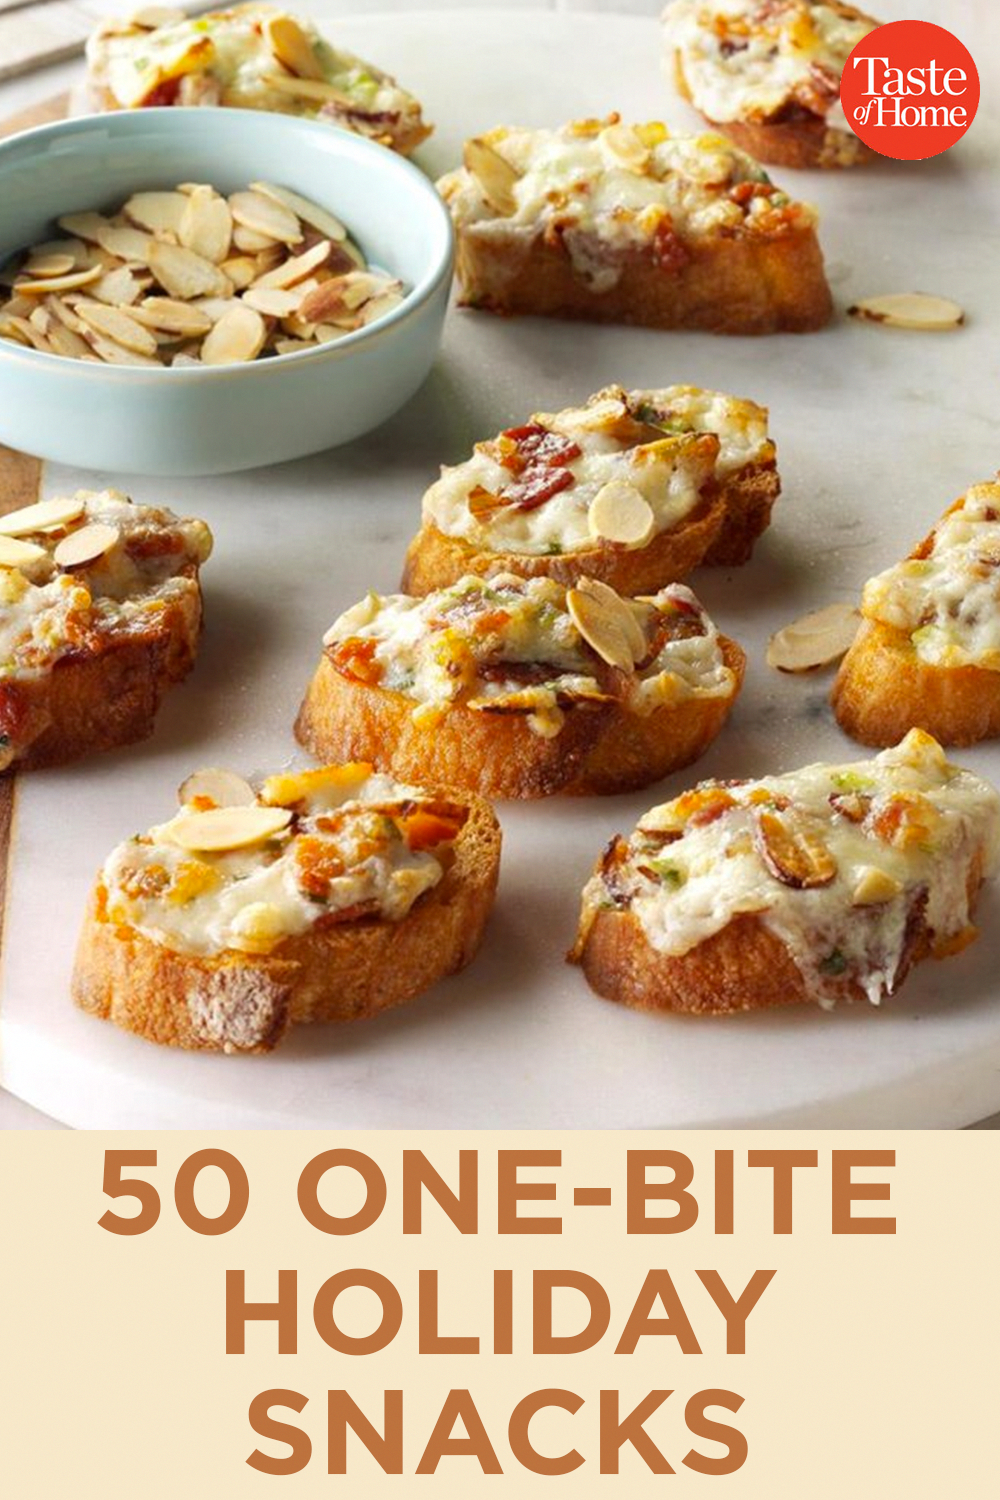 60 One-Bite Appetizers for the Holidays